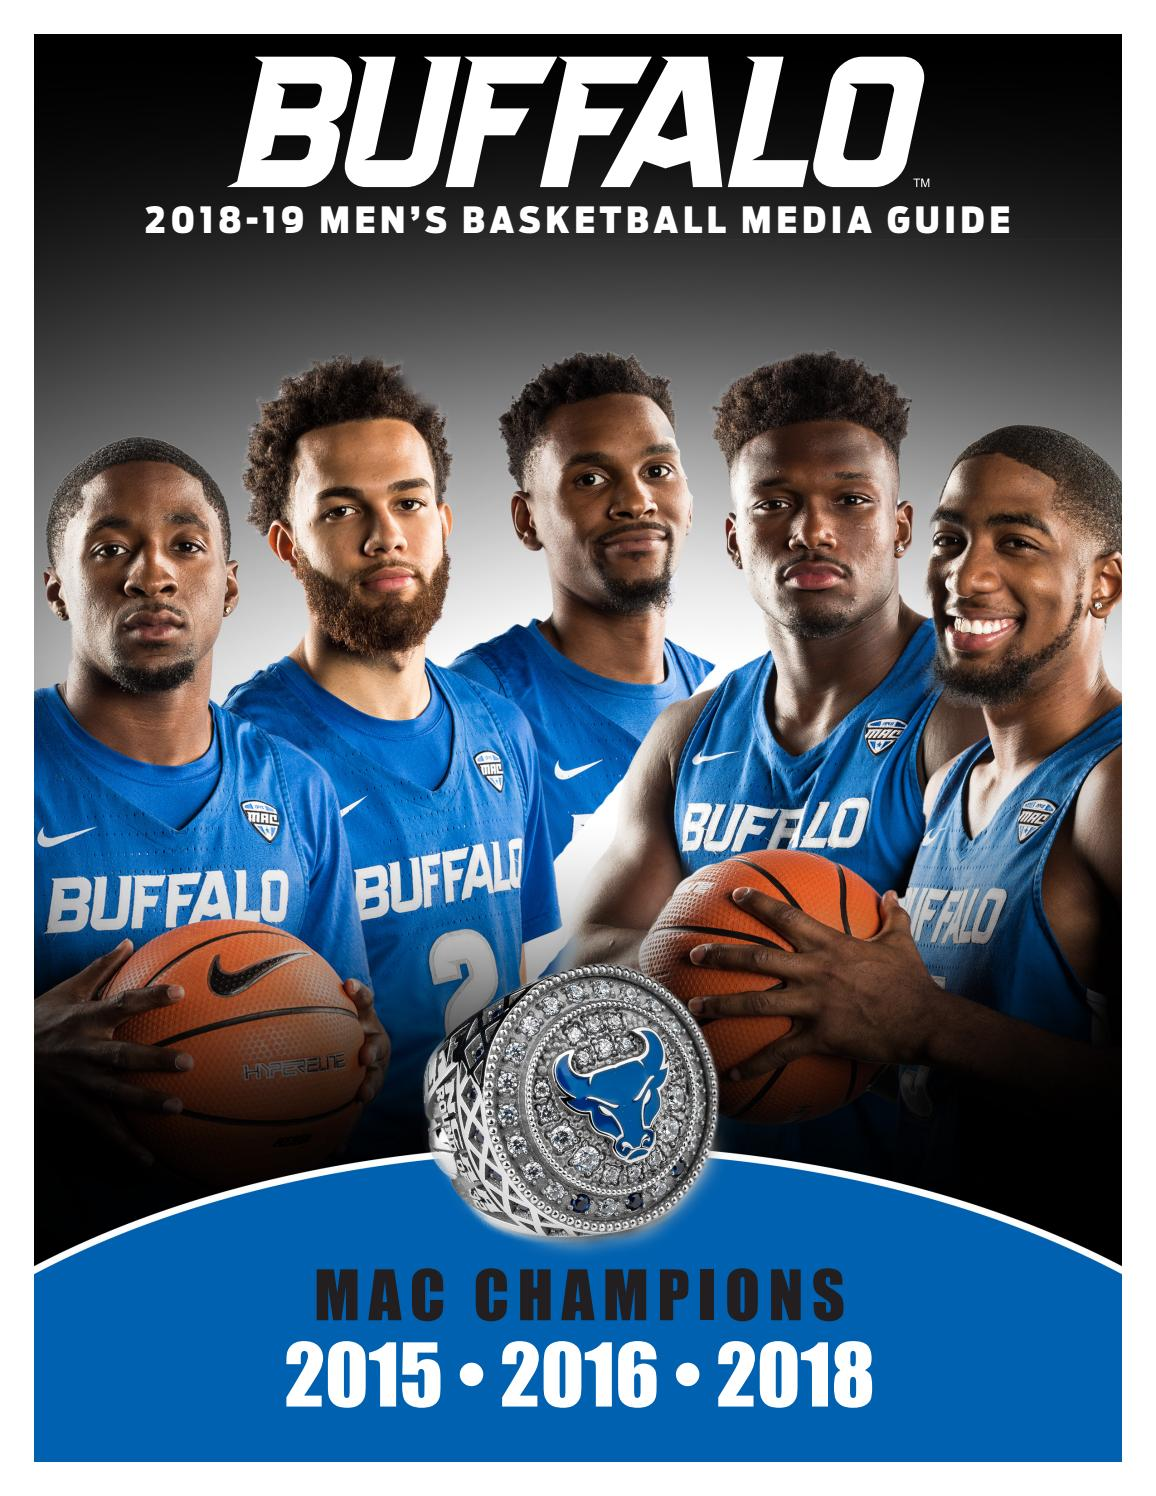 296ccd86587376 2018-19 Buffalo Men s Basketball Media Guide by Buffalo Sports Information  - issuu